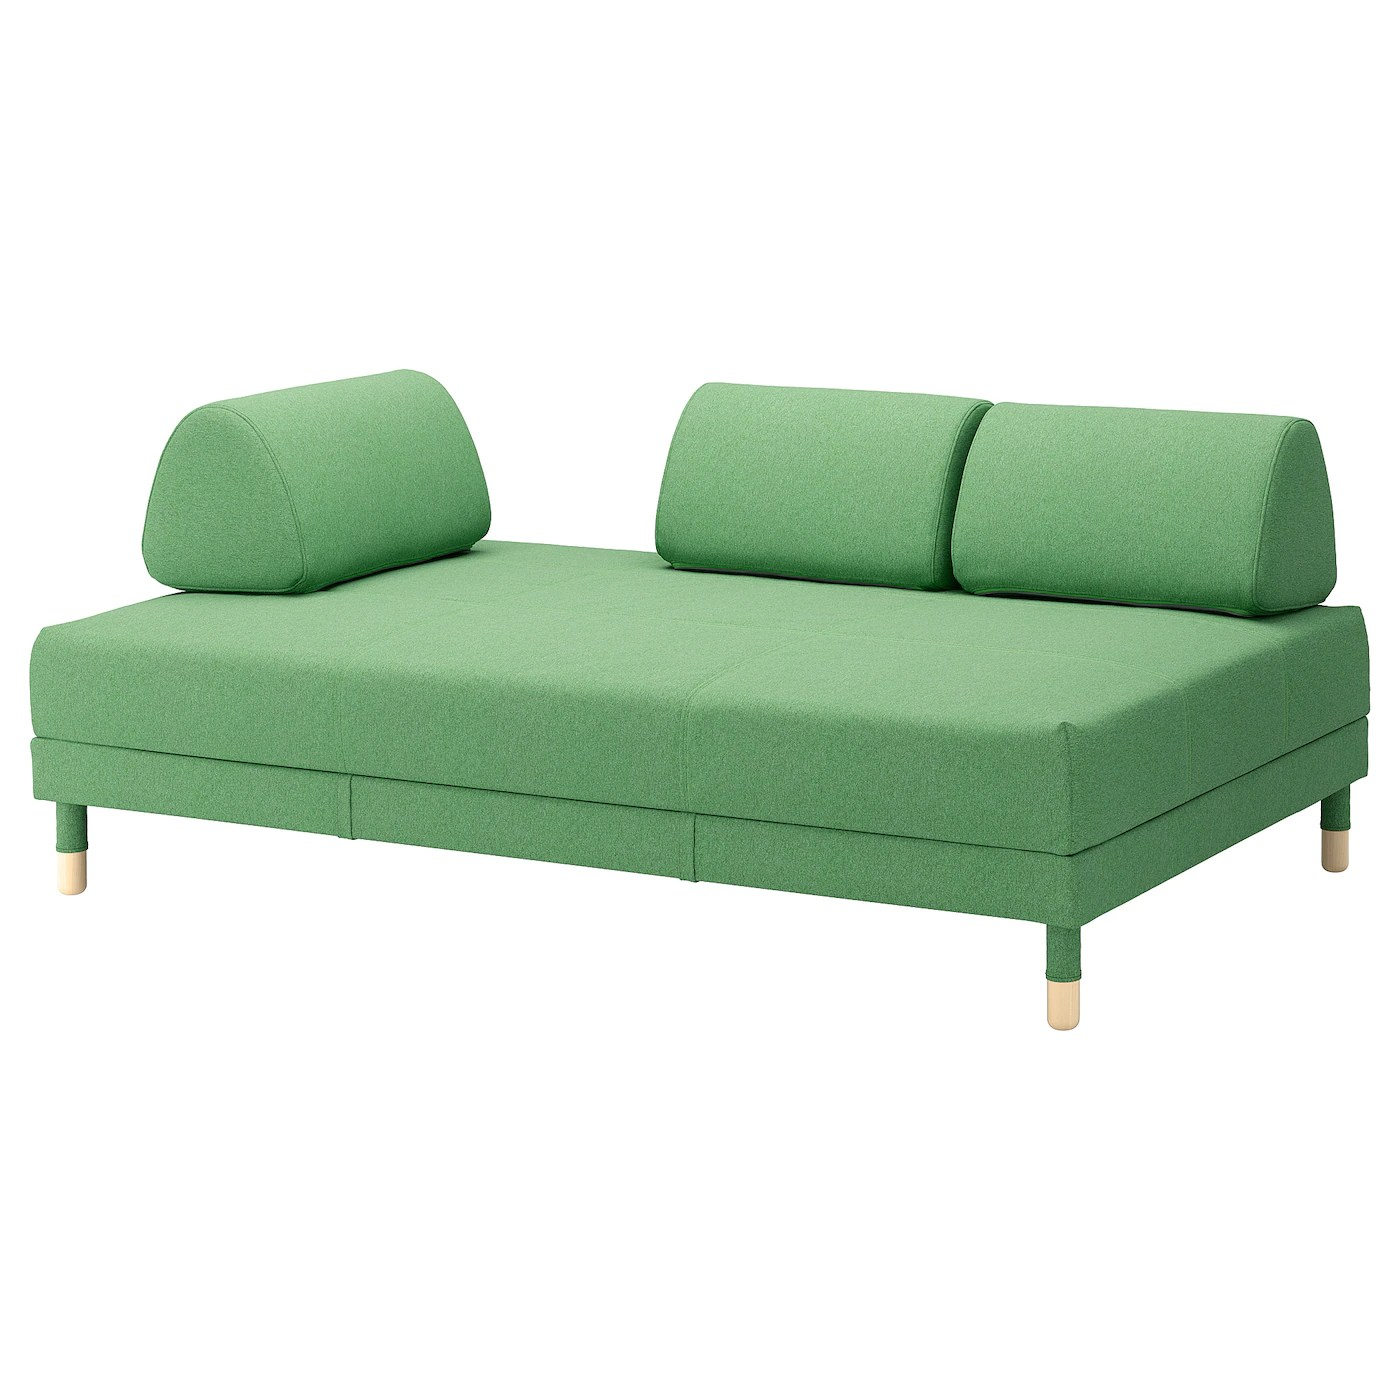 Rolf Benz Sofa 345 Ez Sofa Bed The Cloud Z Gallerie Loja E Colchoes Reclame Aqui Foam